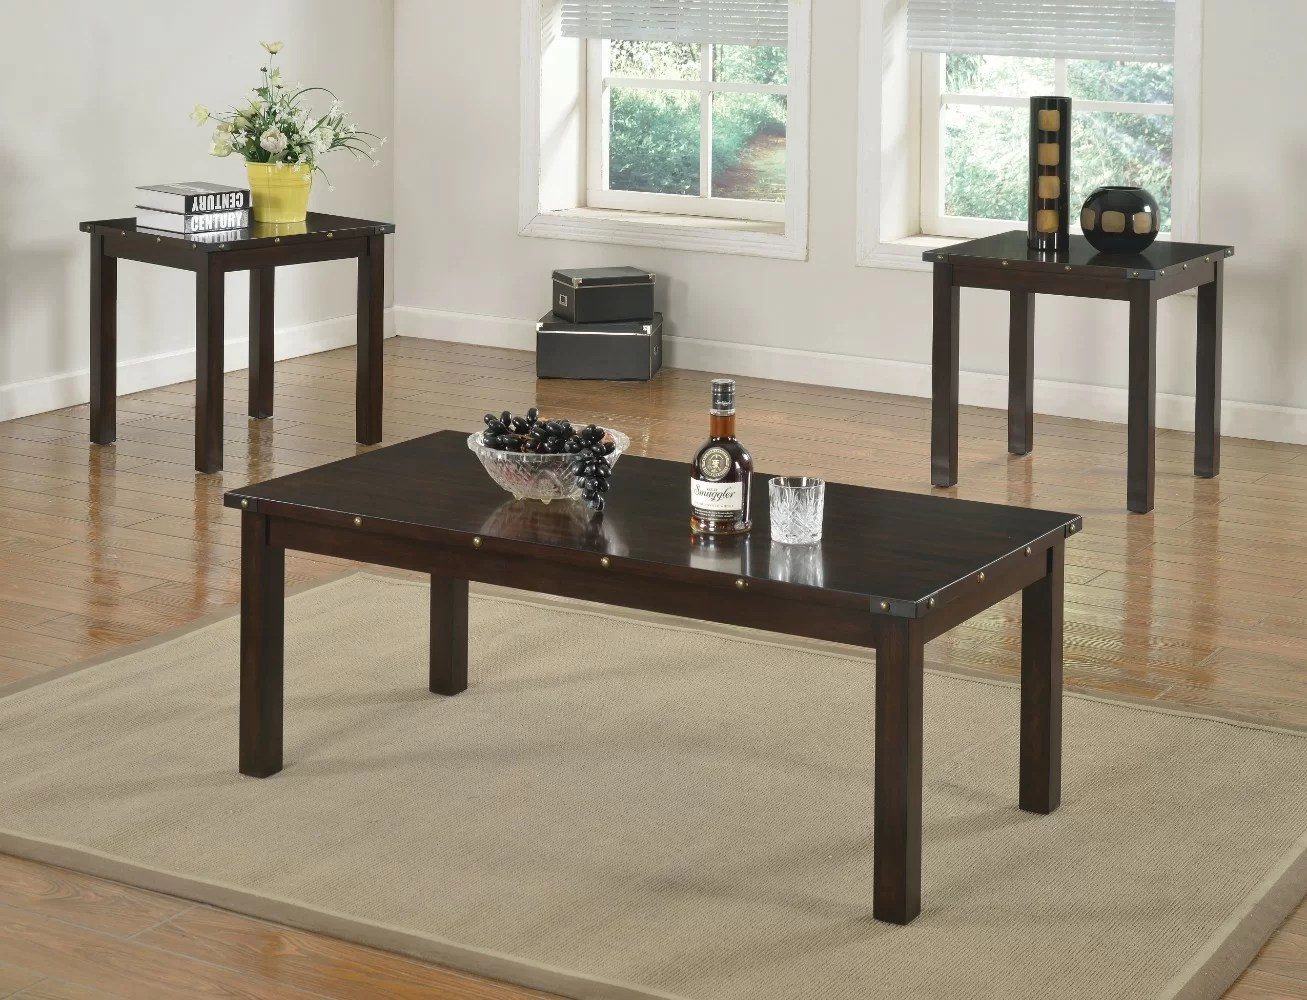 Retro Sofa Wood Mckinnie Retro Wooden 3 Piece Coffee Table Set